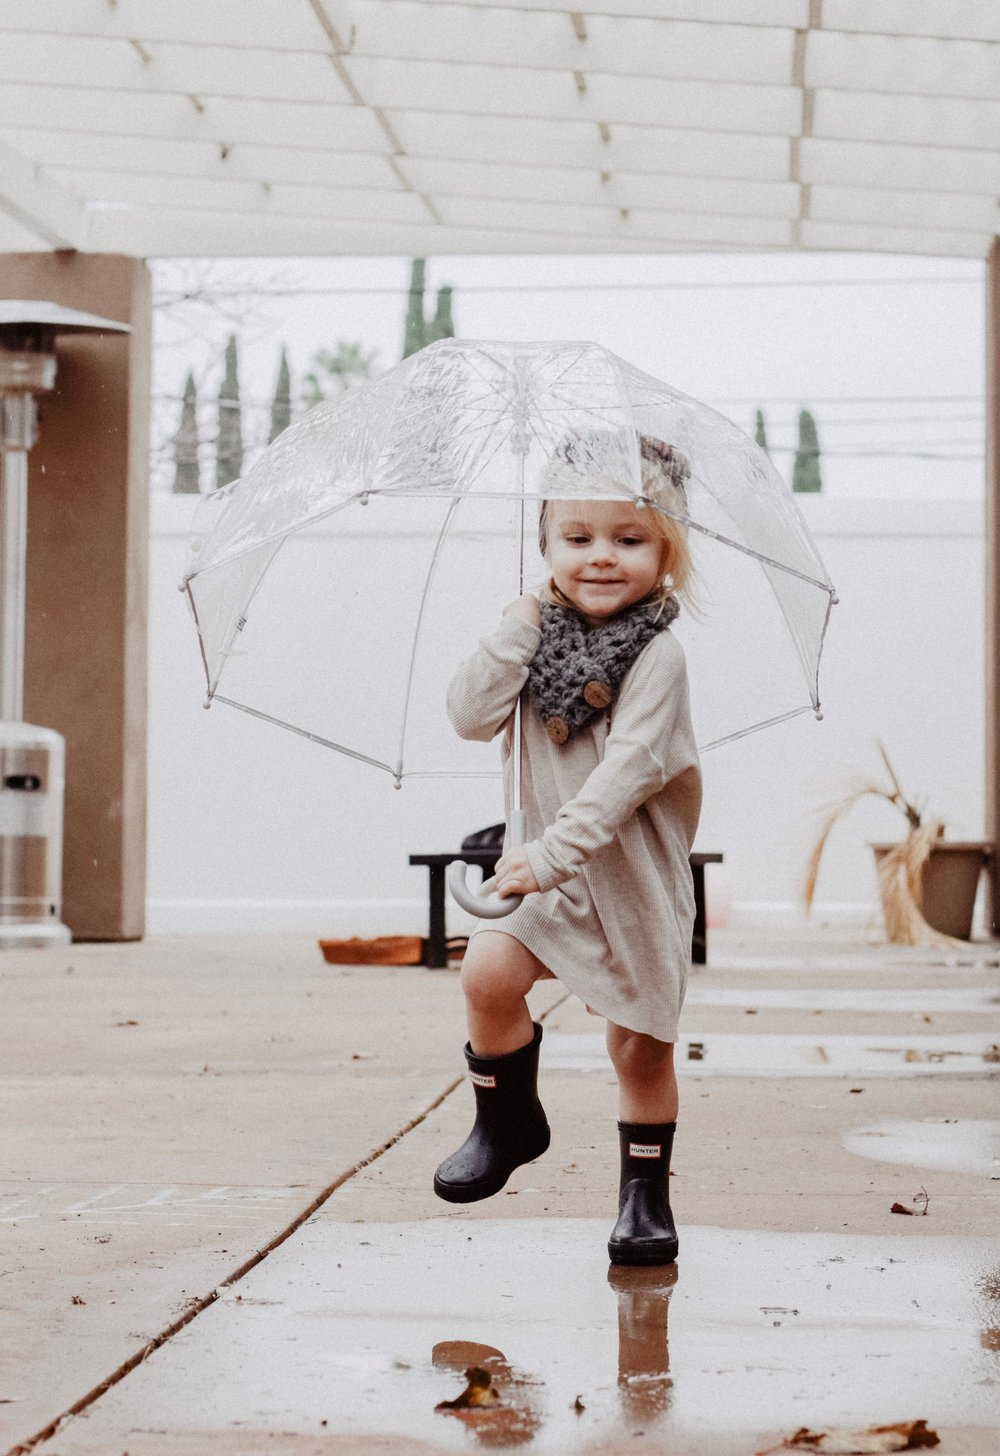 Cute Kids Rain Boots - Clear Kids Umbrellas -- Mommy Blogger-Vlogger - The Overwhelmed Mommy